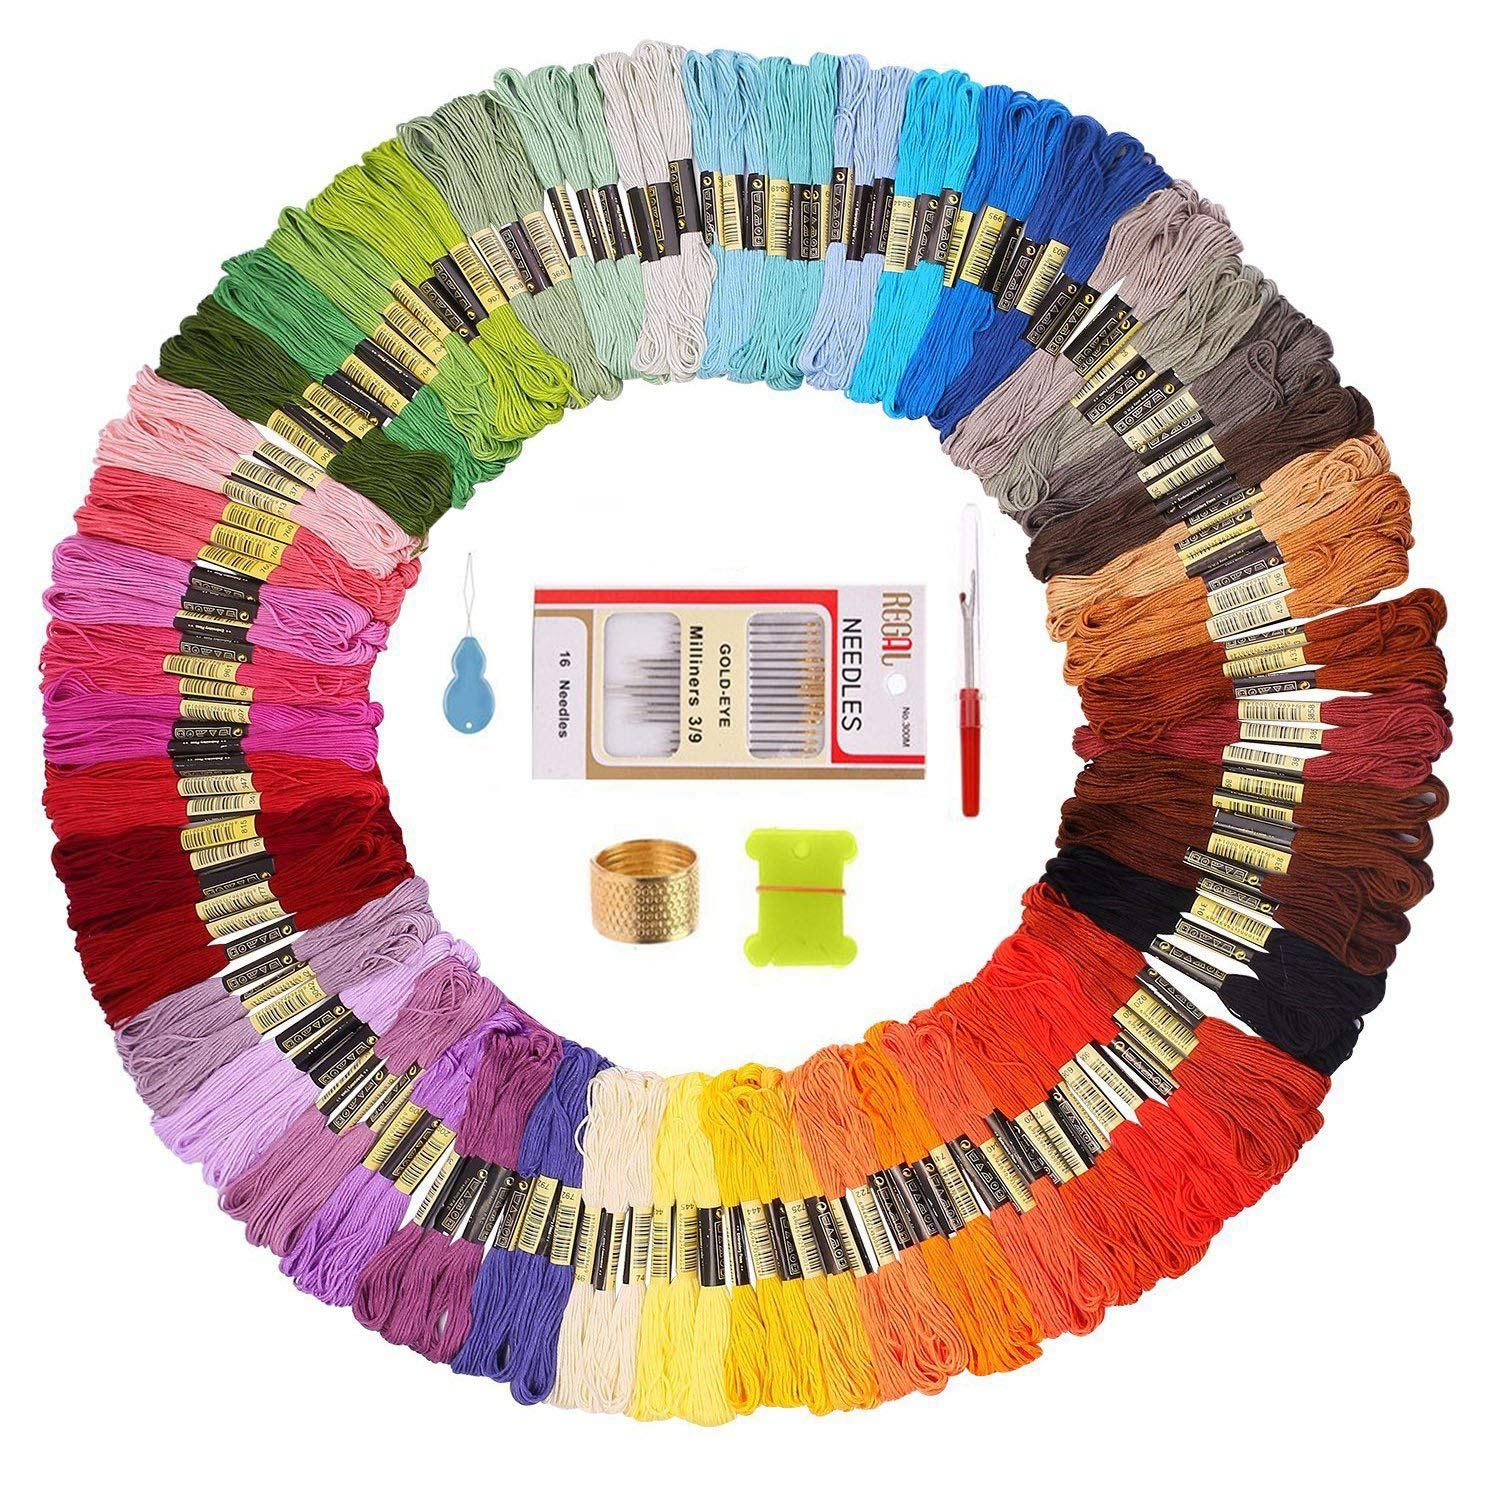 150 Embroidery Thread Skeins with 16 Needles – Friendship Bracelet String - Cross Stitch Threads - Perfect Embroidery Floss Kit for Beginners or kids crafts IU